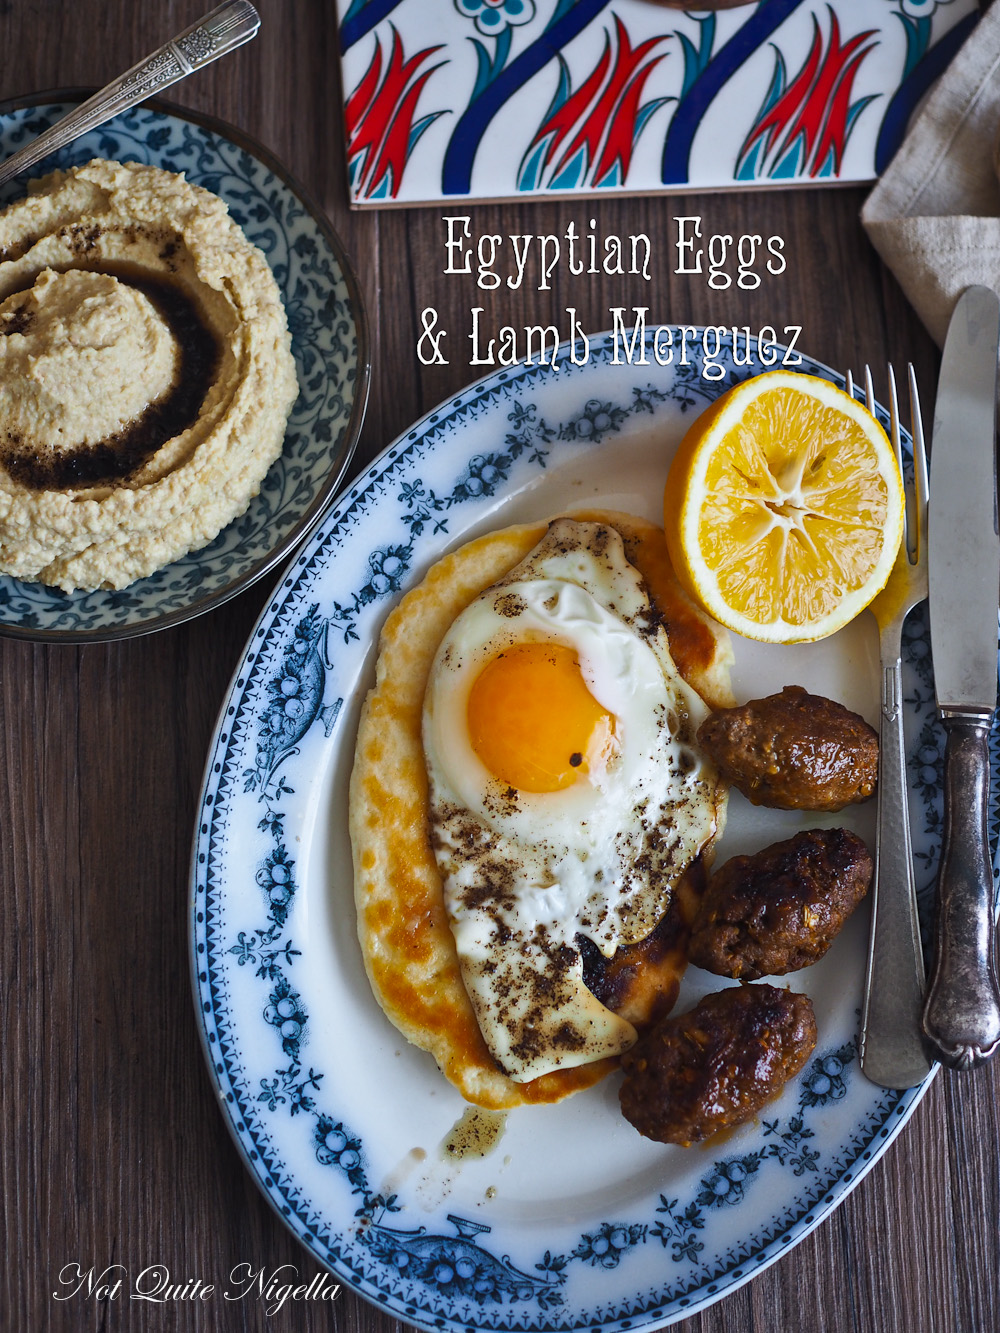 Merguez Sausages Egyptian Eggs Breakfast